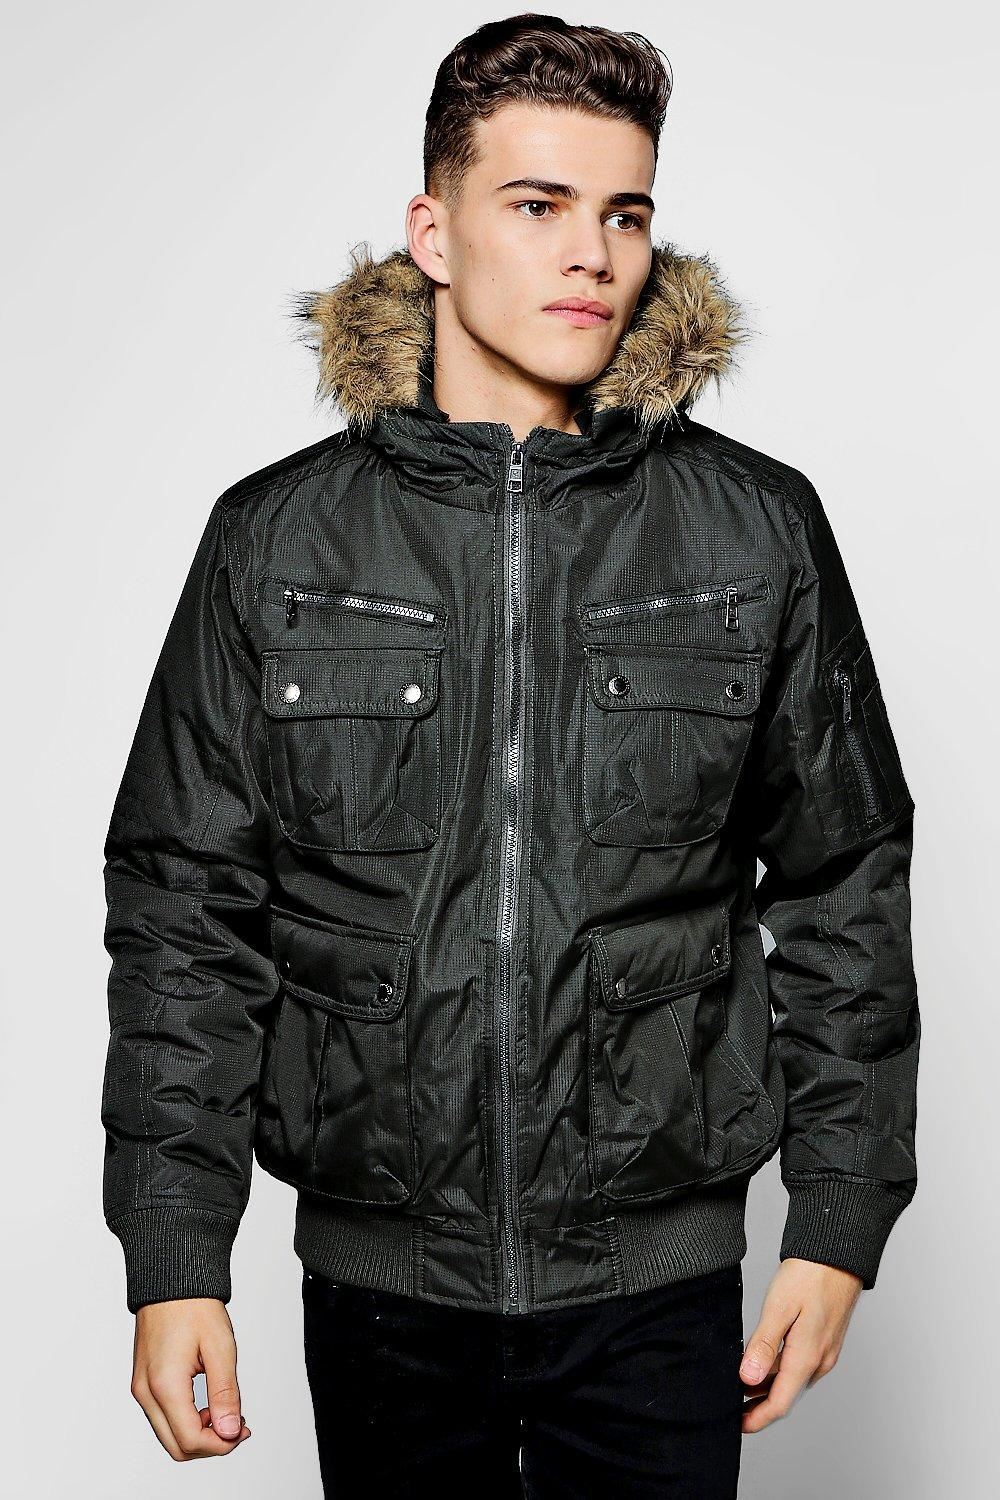 Boohoo Mens Short Parka With Faux Fur Lined Hood | eBay